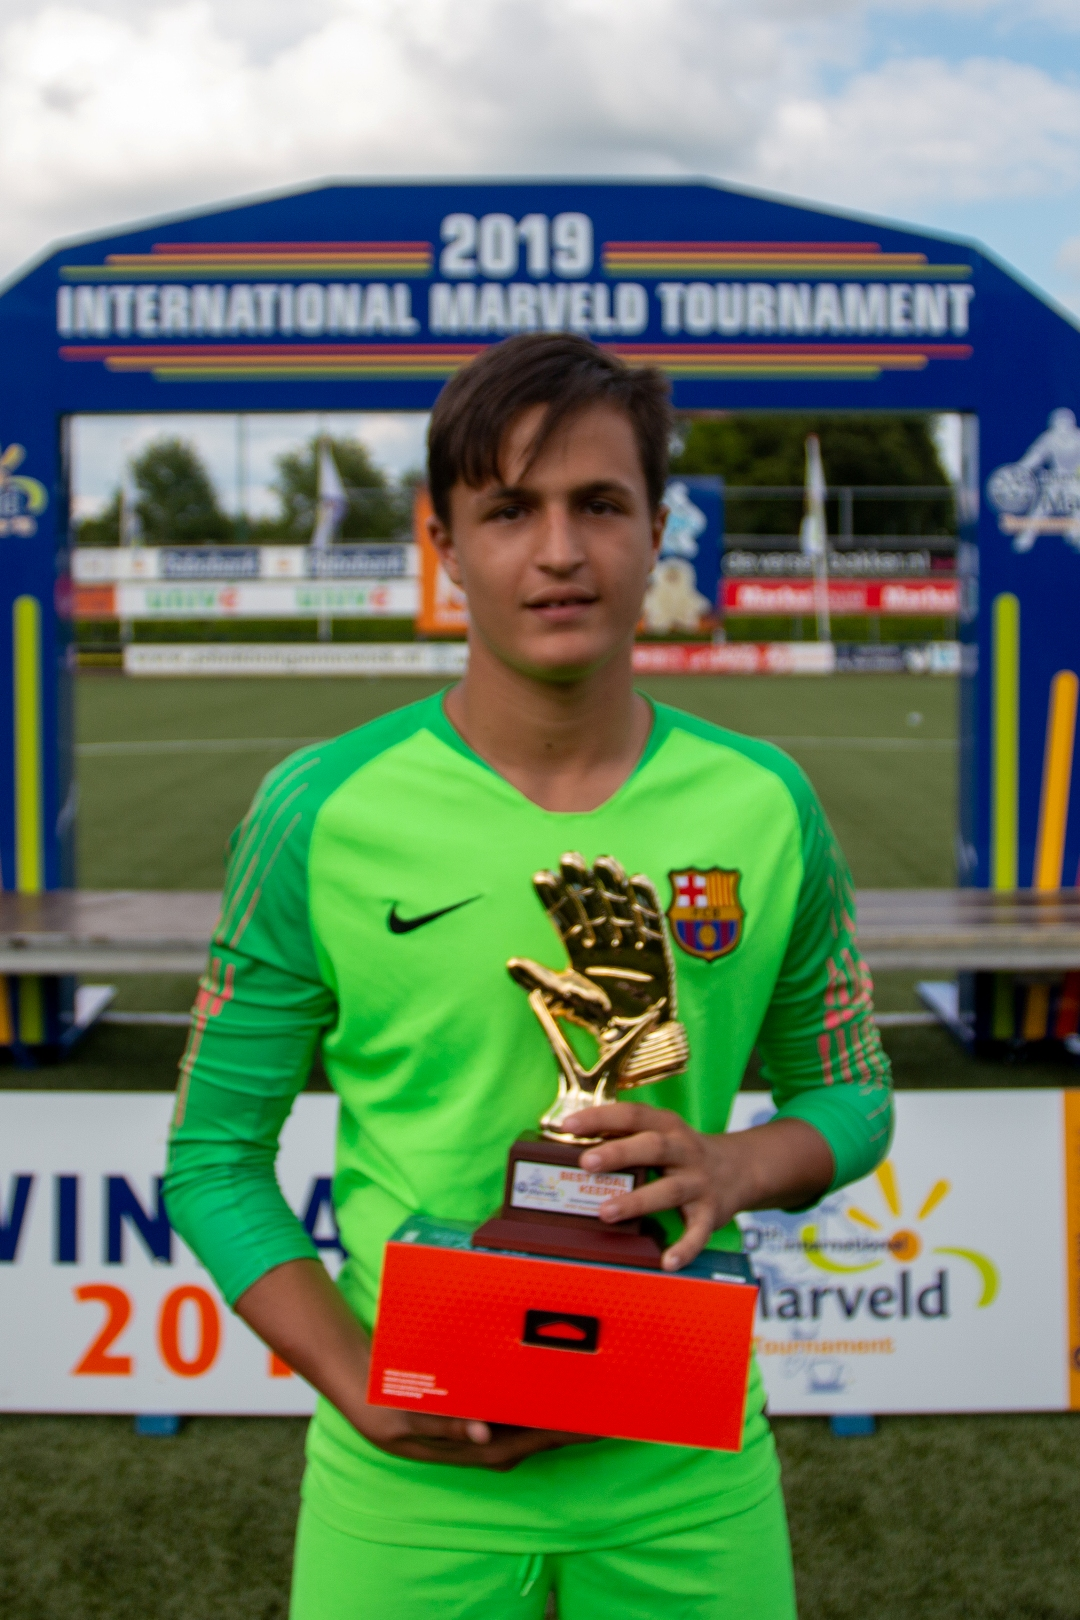 Marveld Tournament 2019 - Best Goalkeeper Antonio Gomez Del Castillo of FC Barcelona